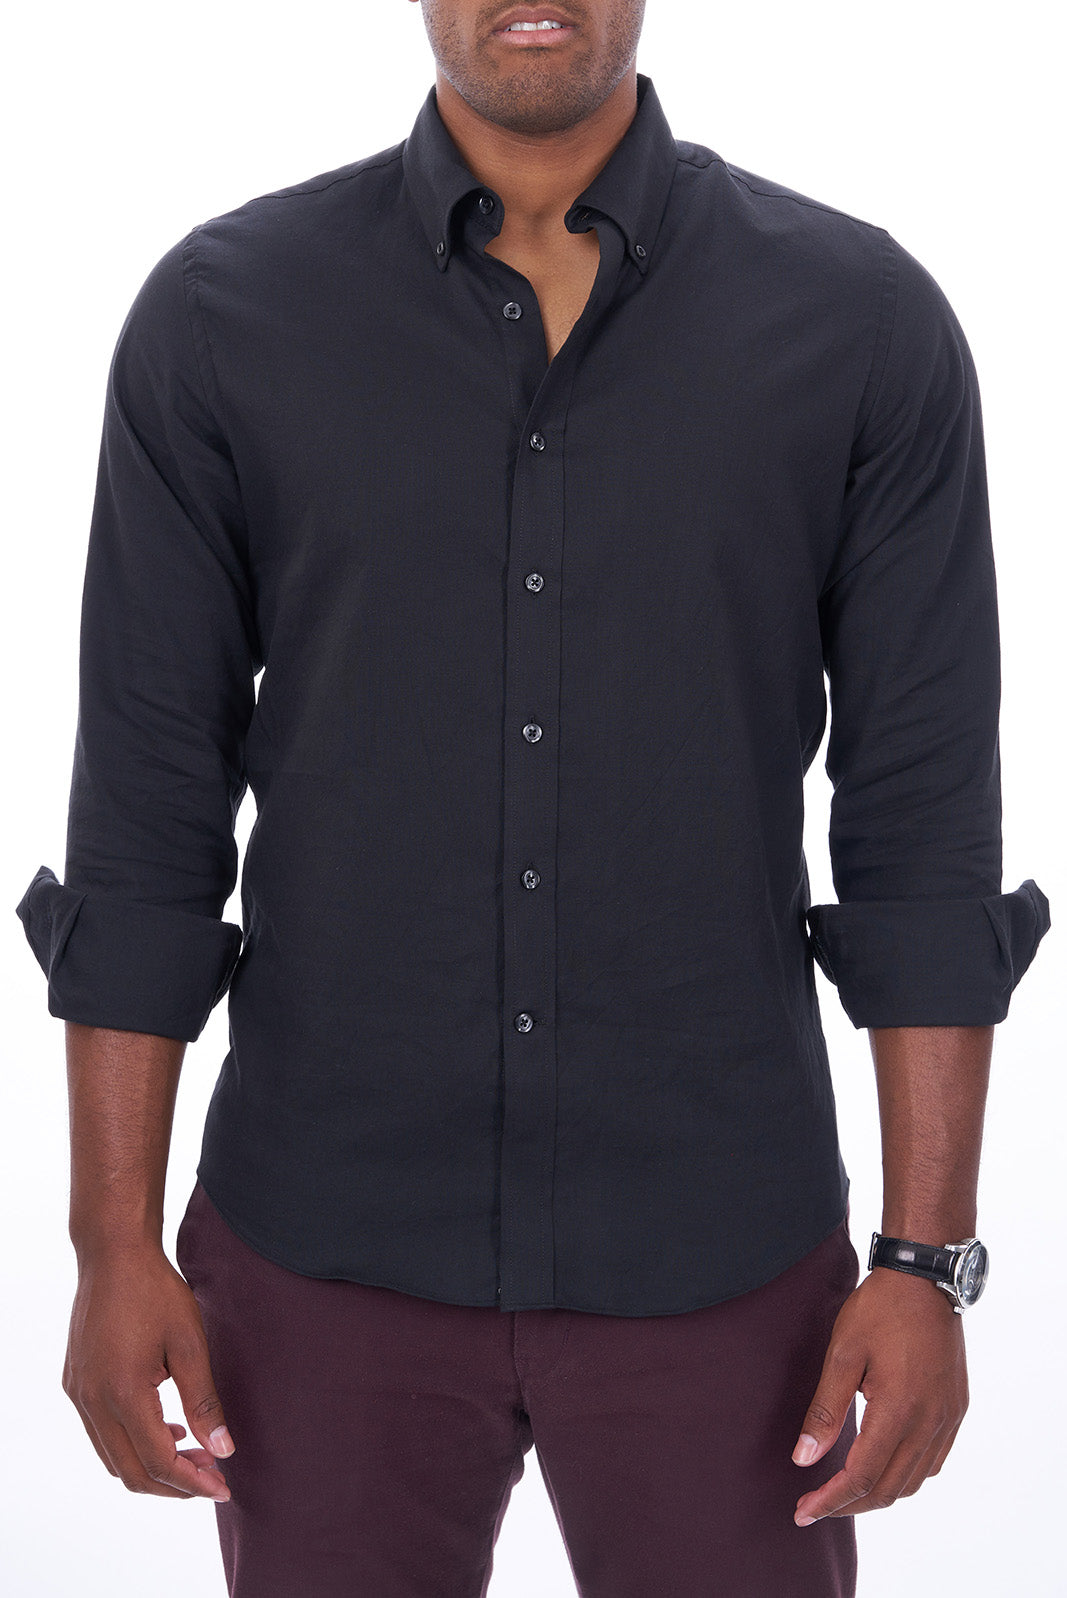 Black Oxford: Semi-Spread Collar, Barrel Cuff